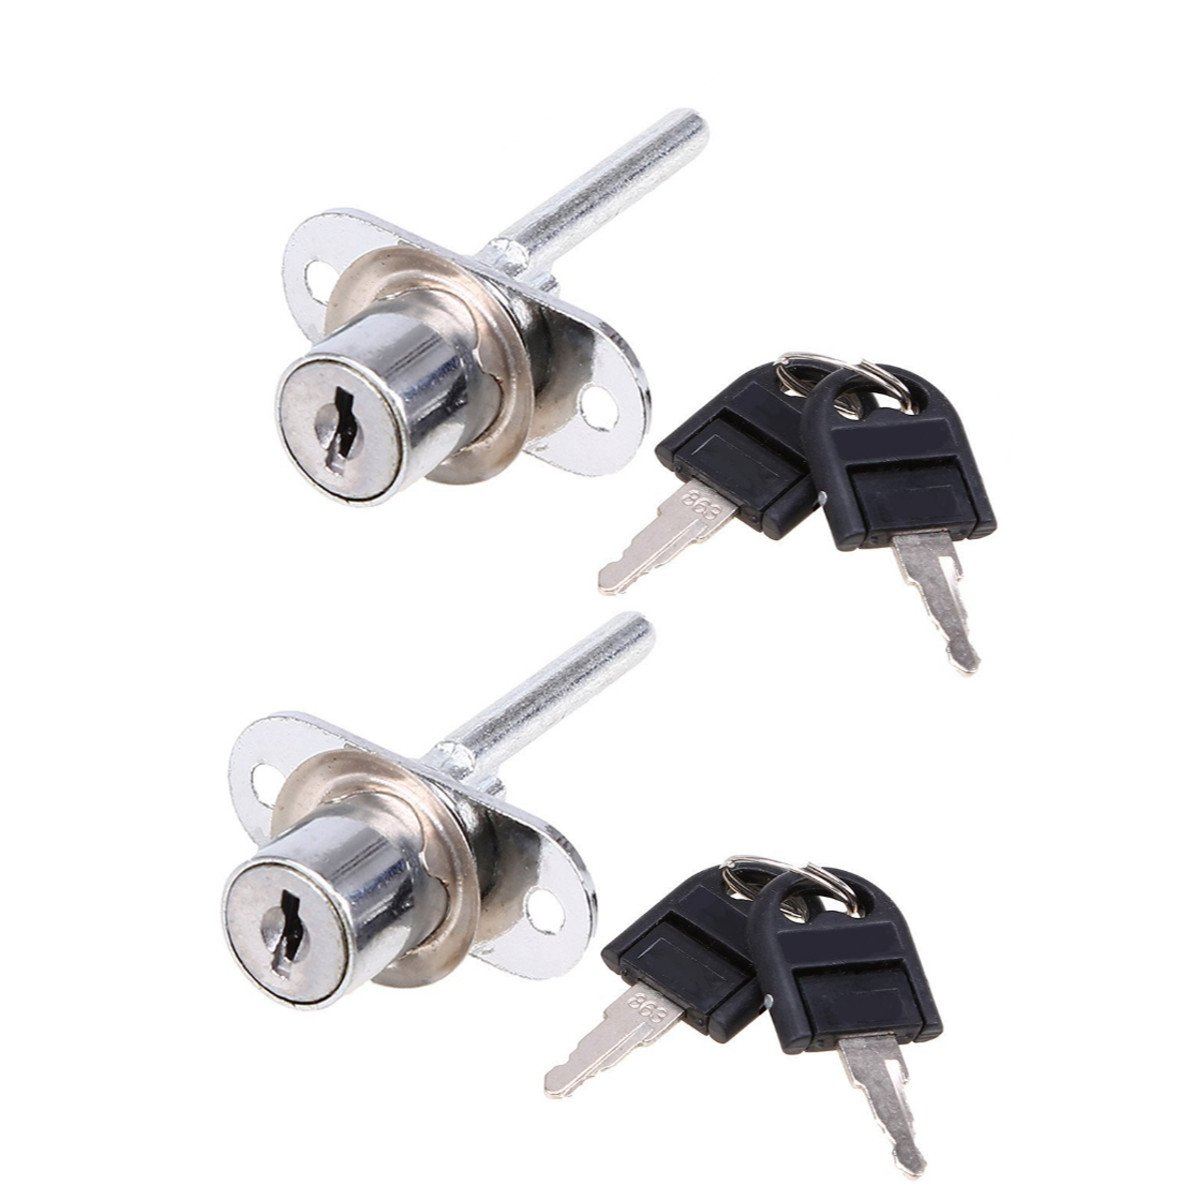 WCIC 2PCS Office Drawers Lock, Zinc Alloy Security Lock with Keys for Filing Cabinets Furniture Diameter 16mm, Length 61mm